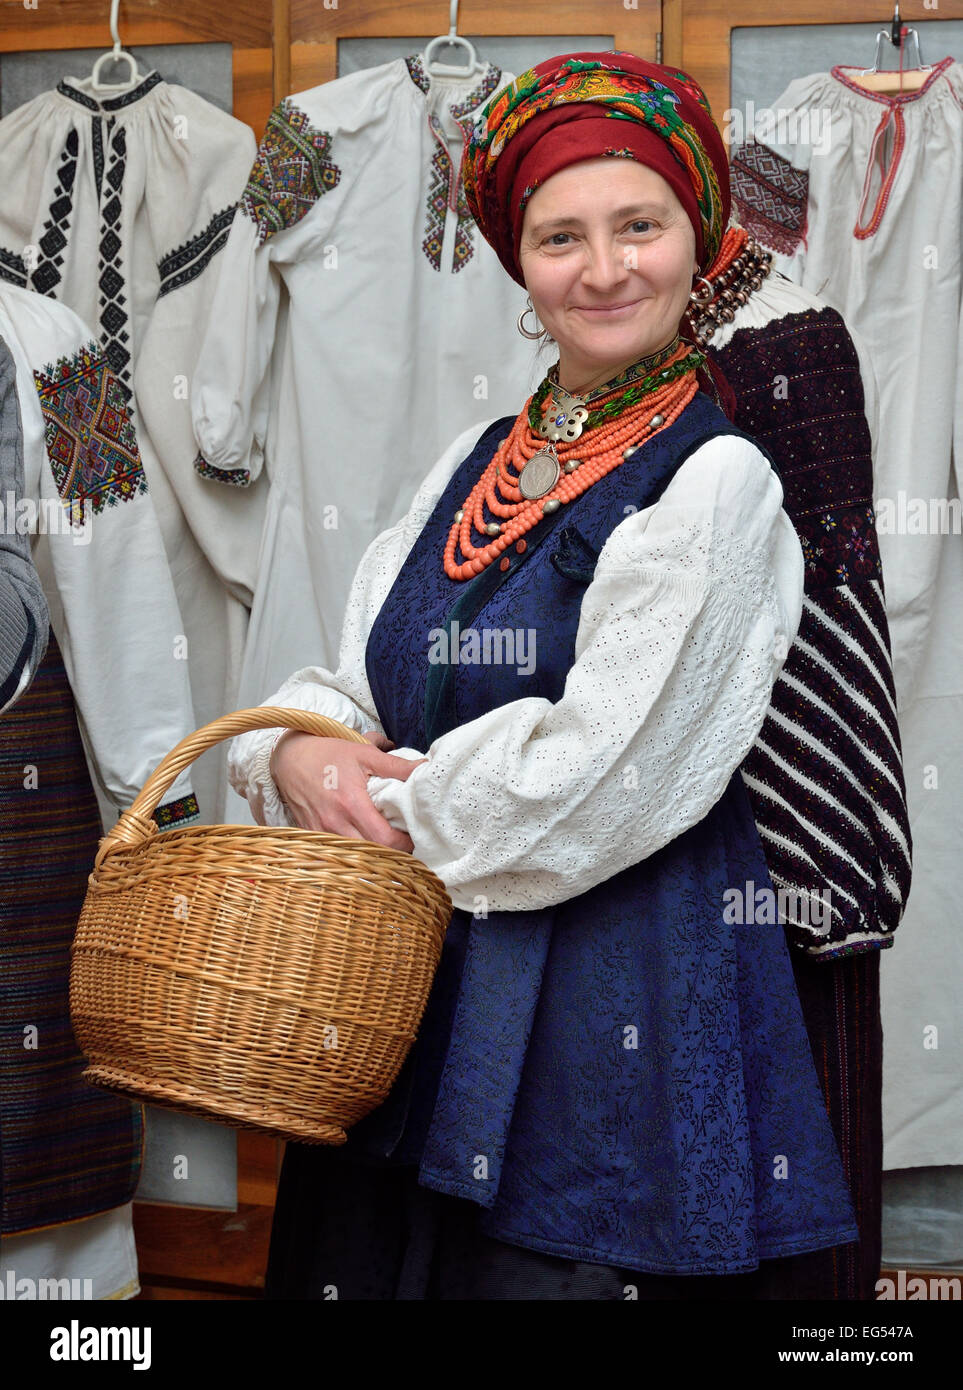 Ukrainian woman in the traditional garment - Stock Image